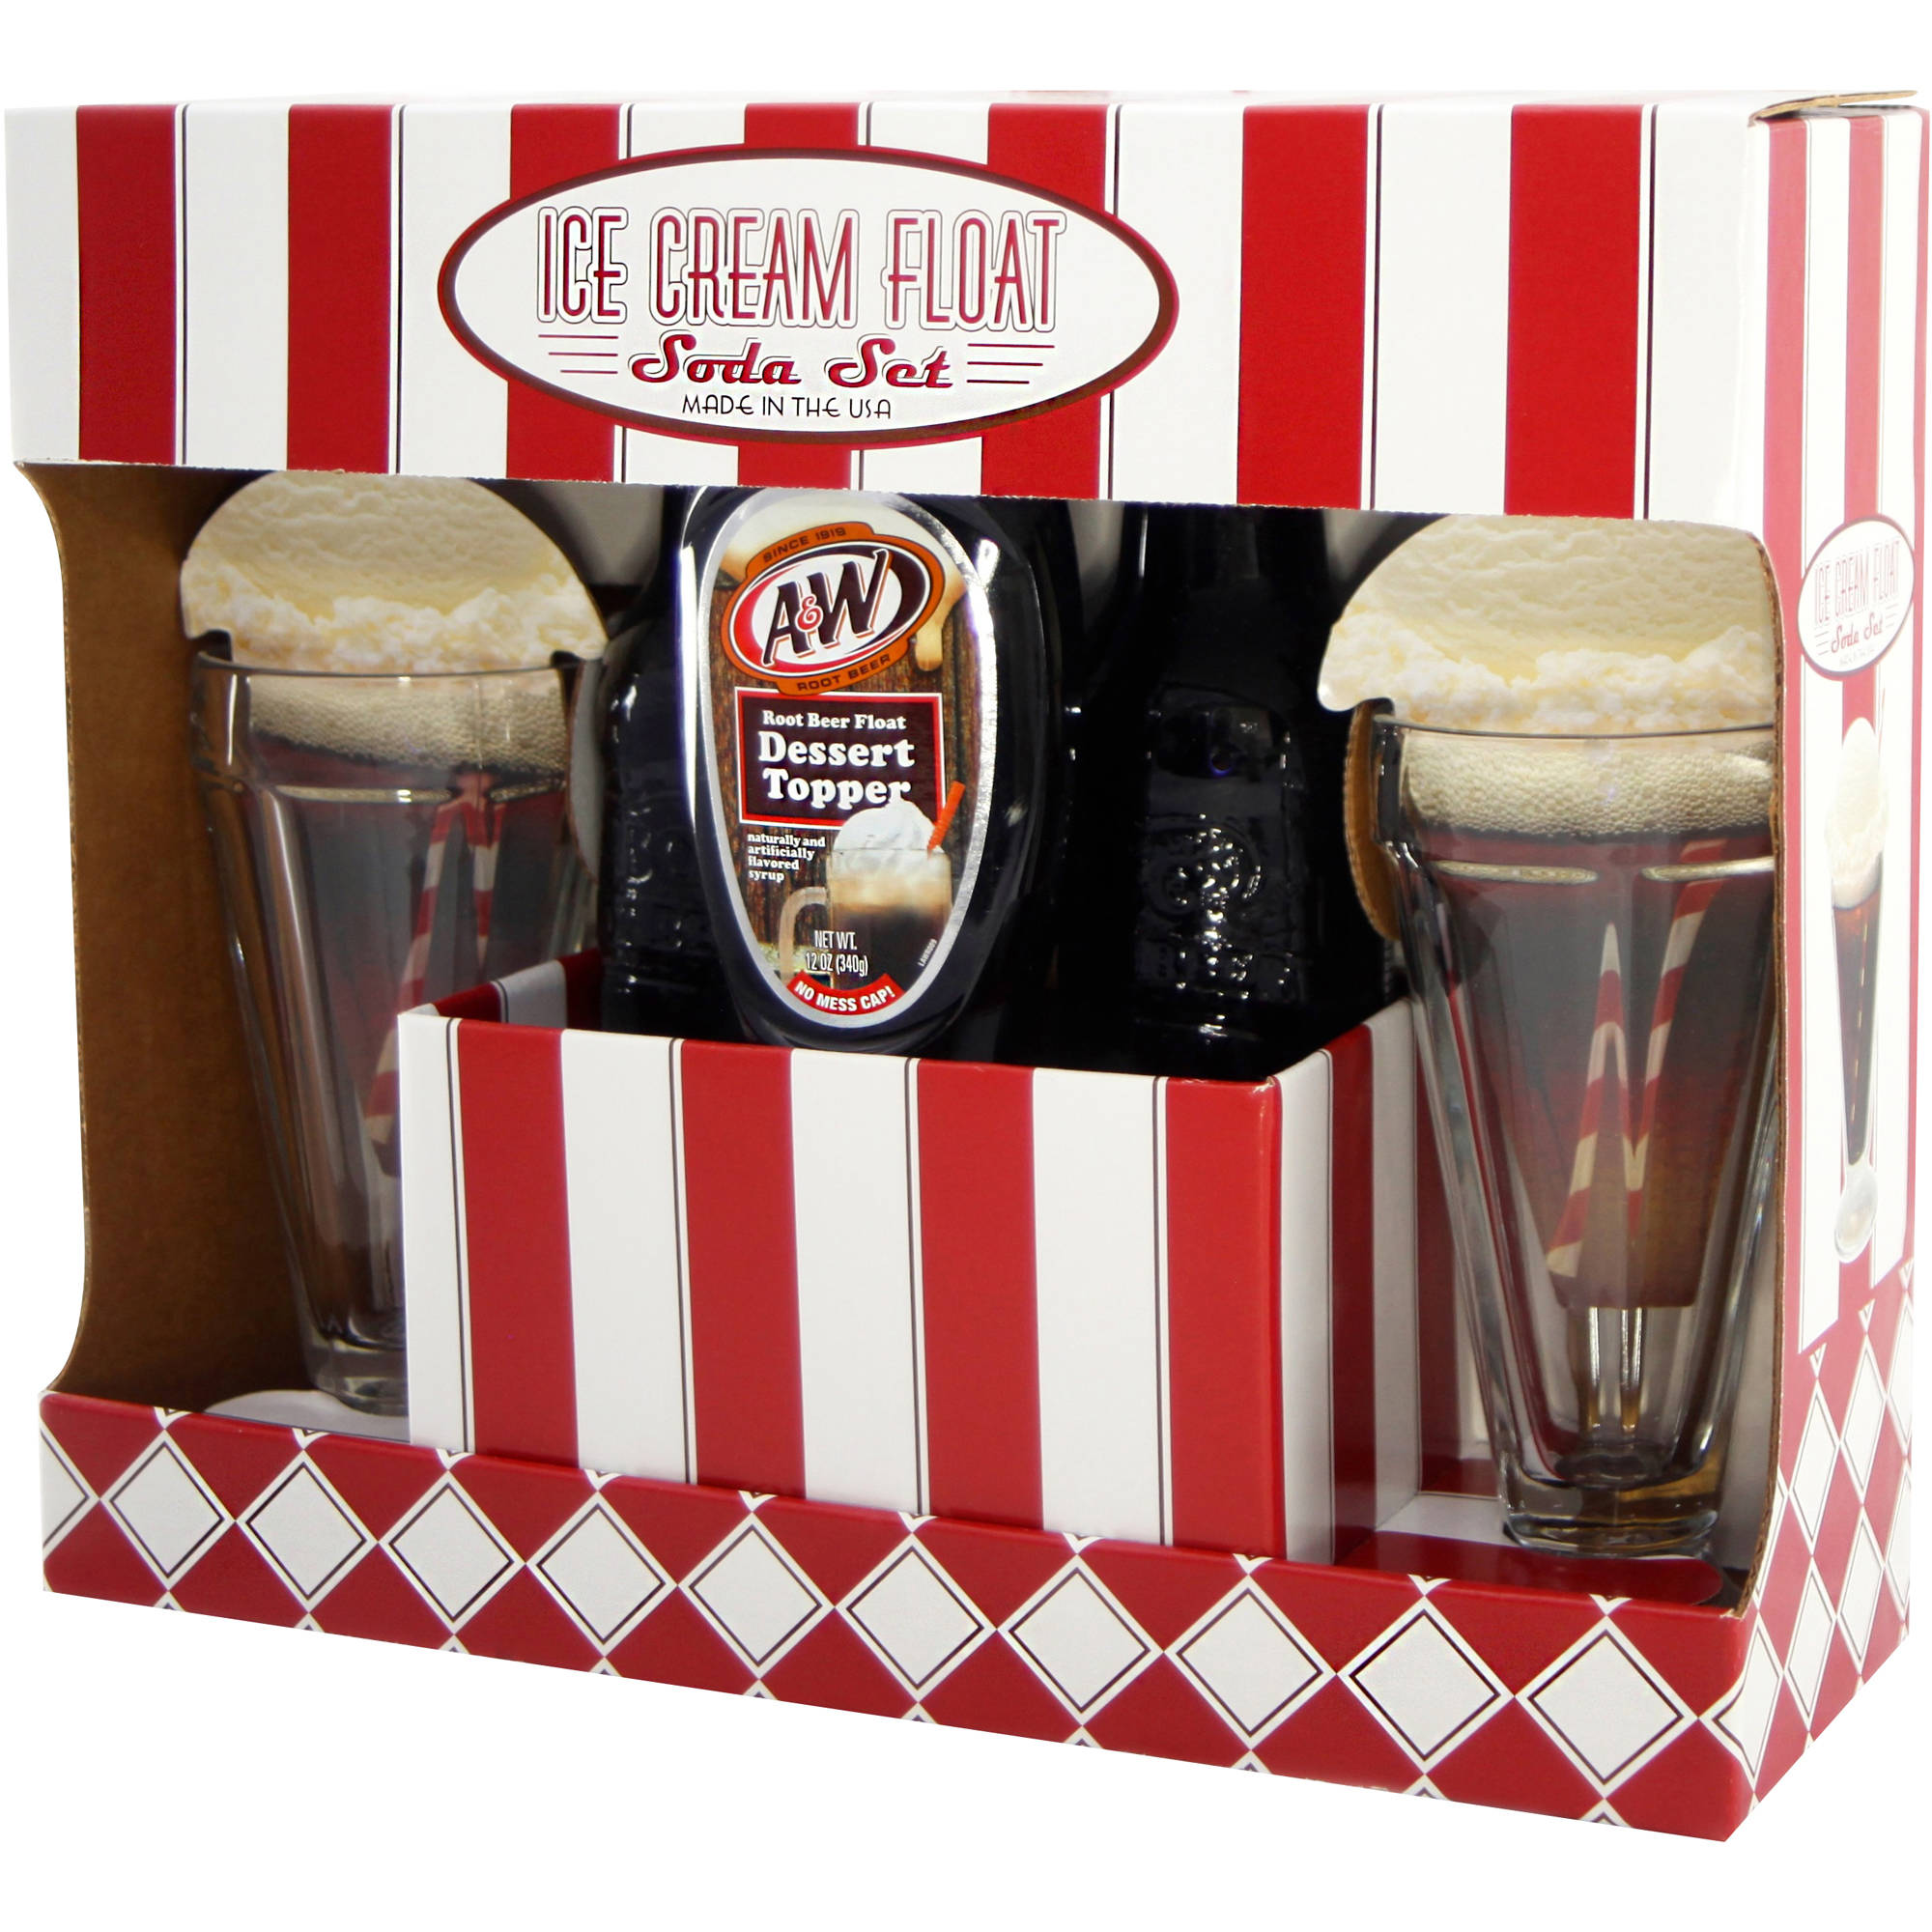 A&W Root Beer Ice Cream Float Soda Holiday Gift Set, 5 pc - Walmart.com